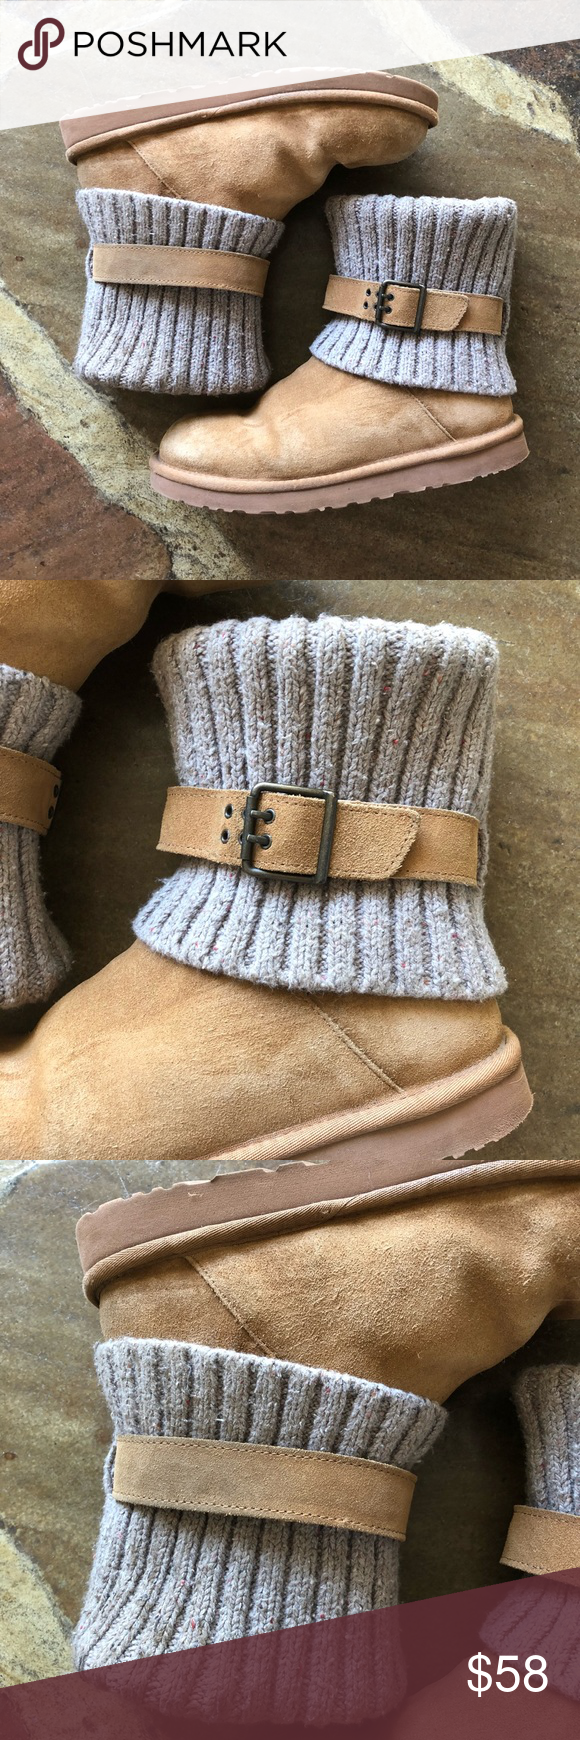 508d55b103f Ugg Cassidy Knit Cuff Sweater Boot, sz 10 Adjustable buckle strap ...